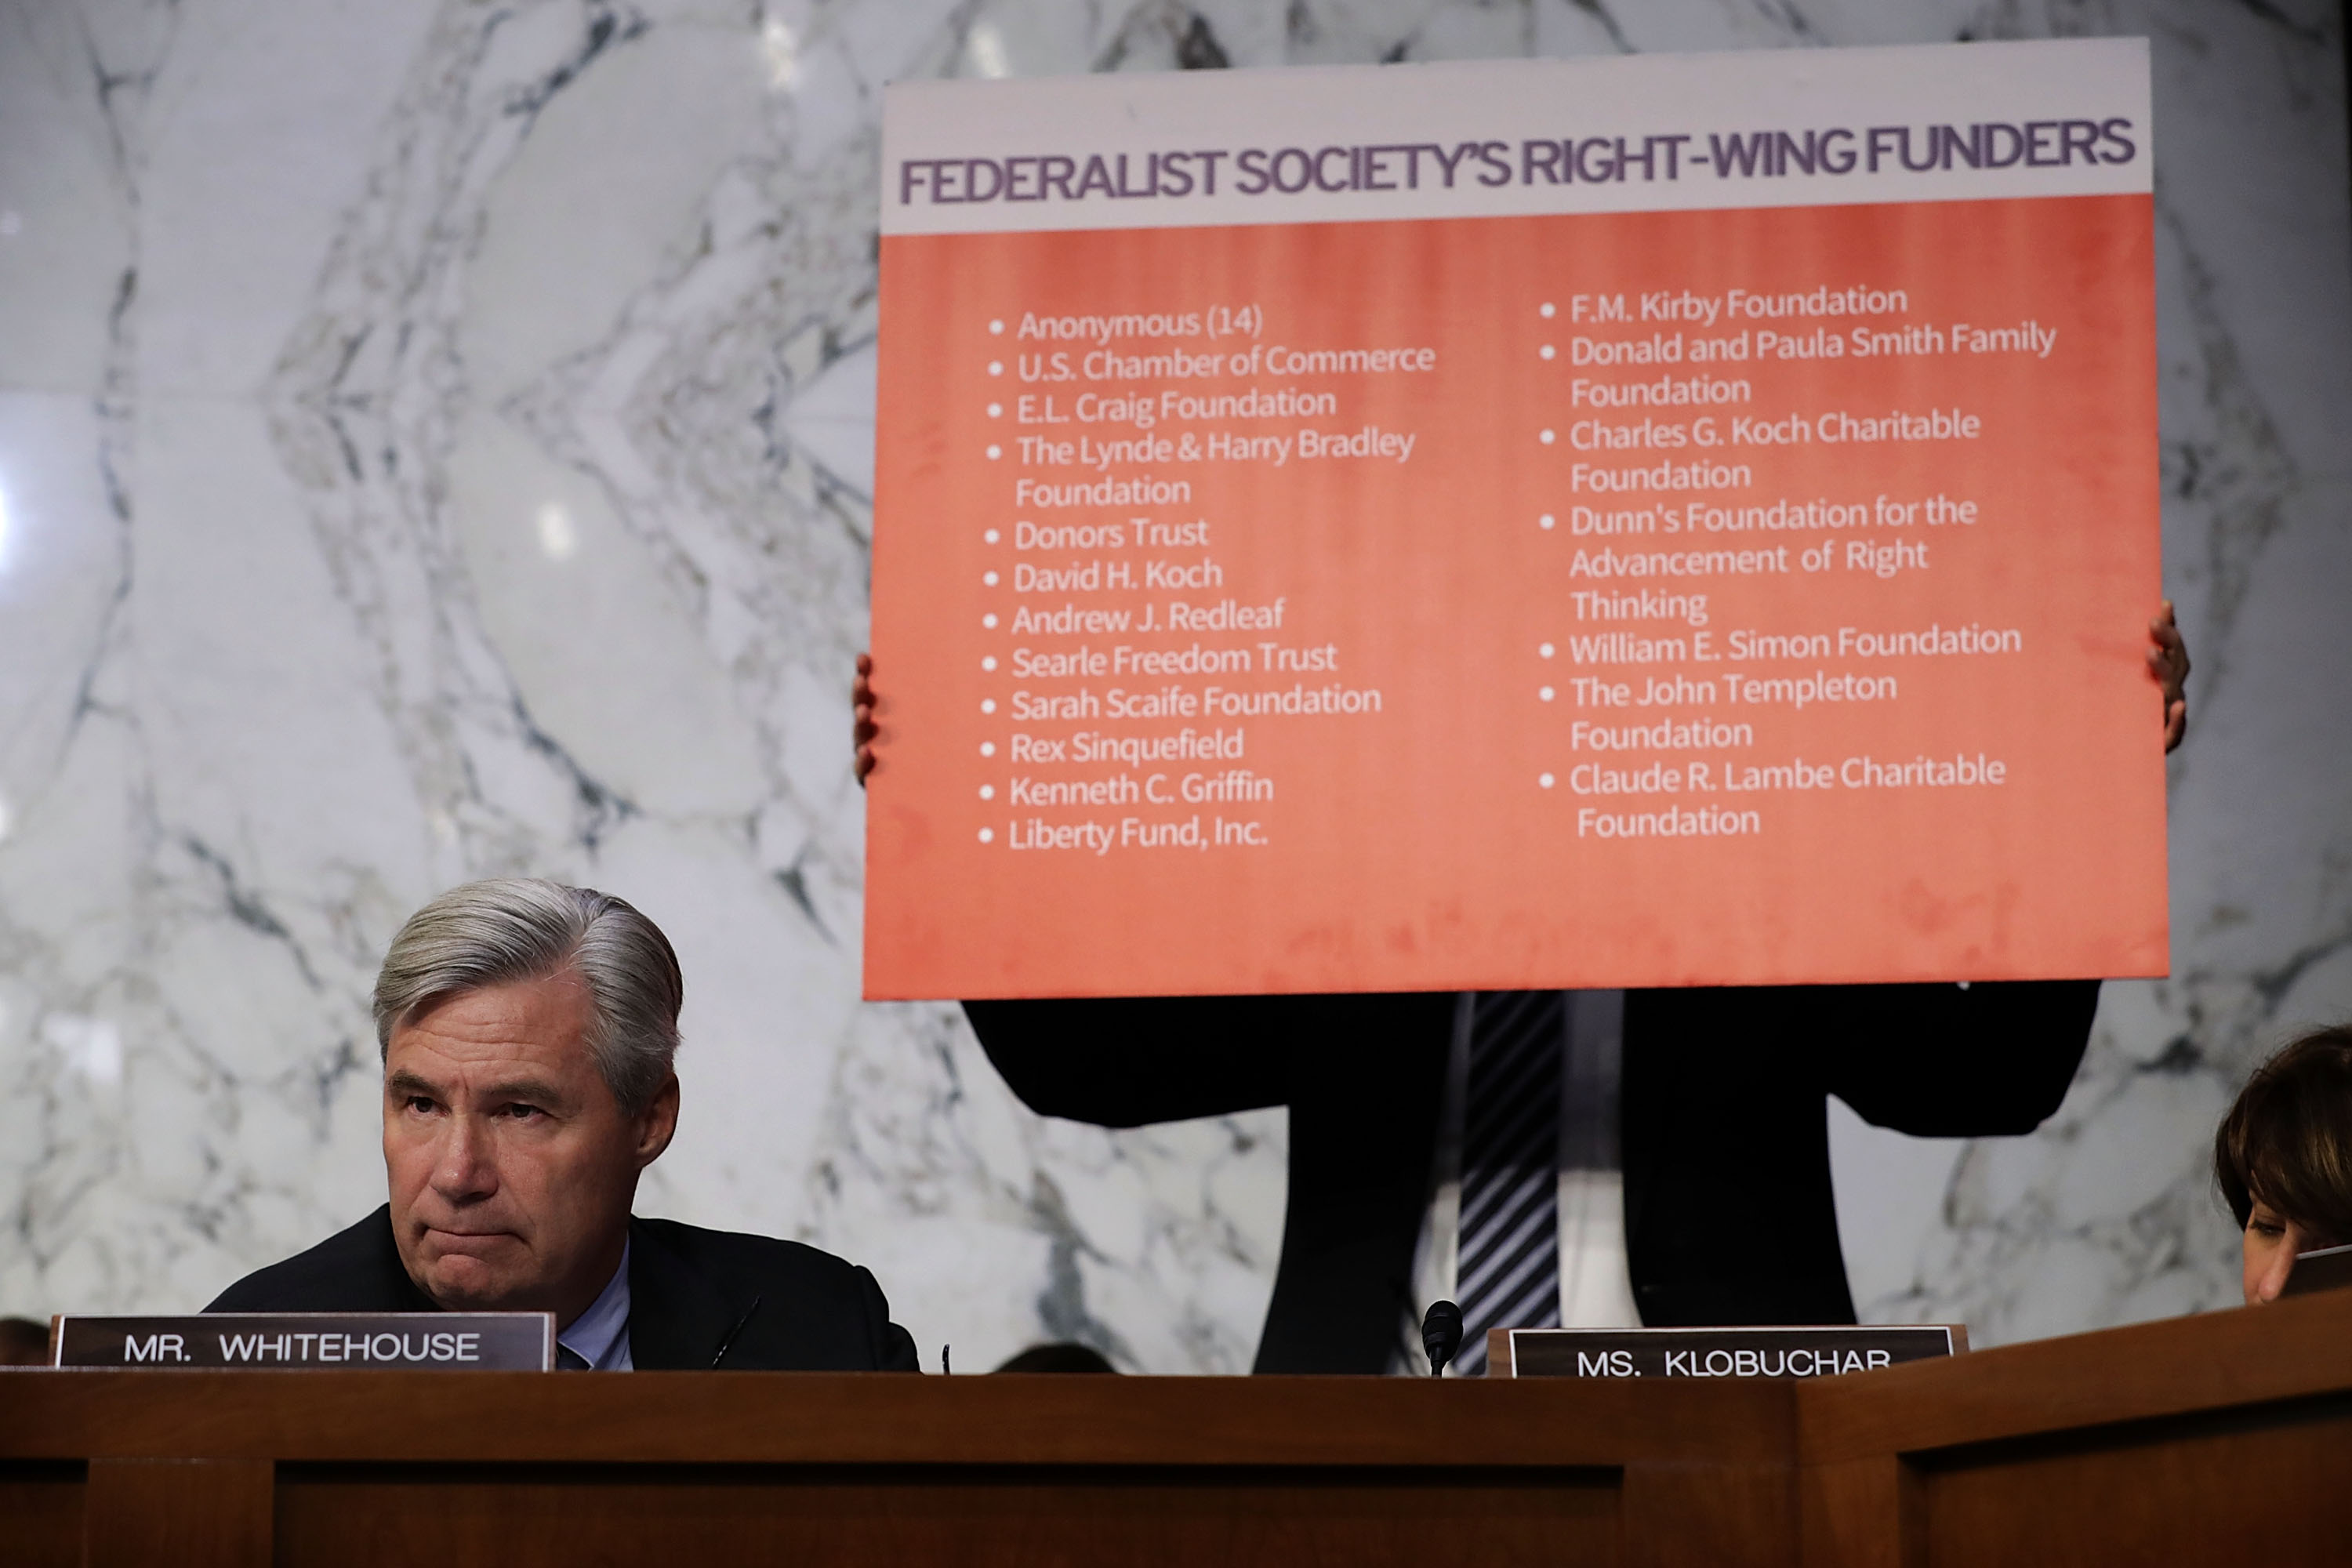 Sen. Sheldon Whitehouse (D-RI) questions Justice Brett Kavanaugh during the second day of his confirmation hearing on September 5, 2018. (Chip Somodevilla/Getty Images)